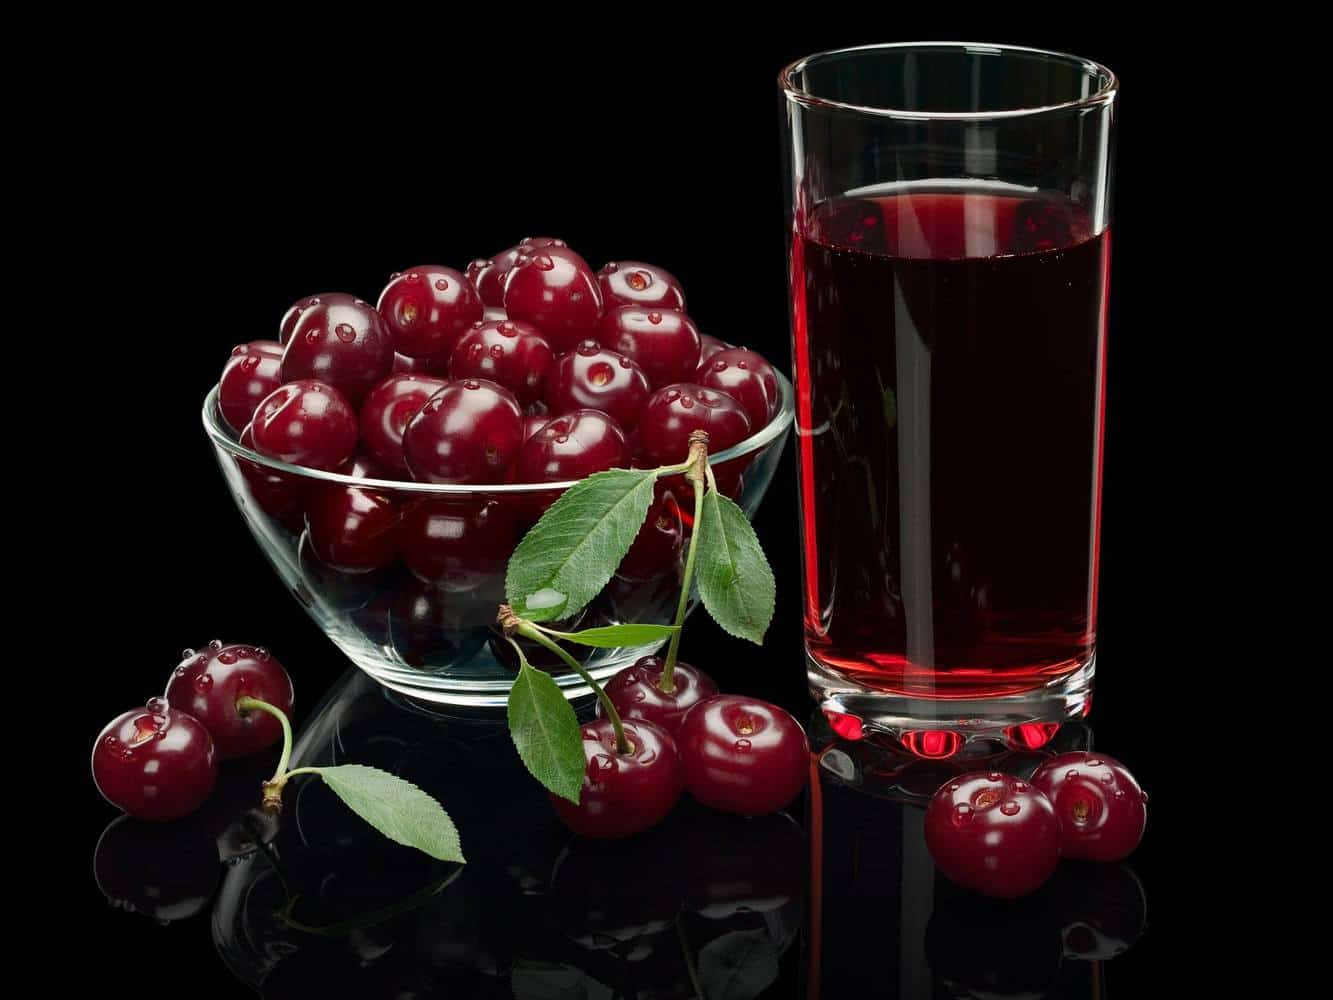 A glass of black cherry juice next to a bowl of black cherries.